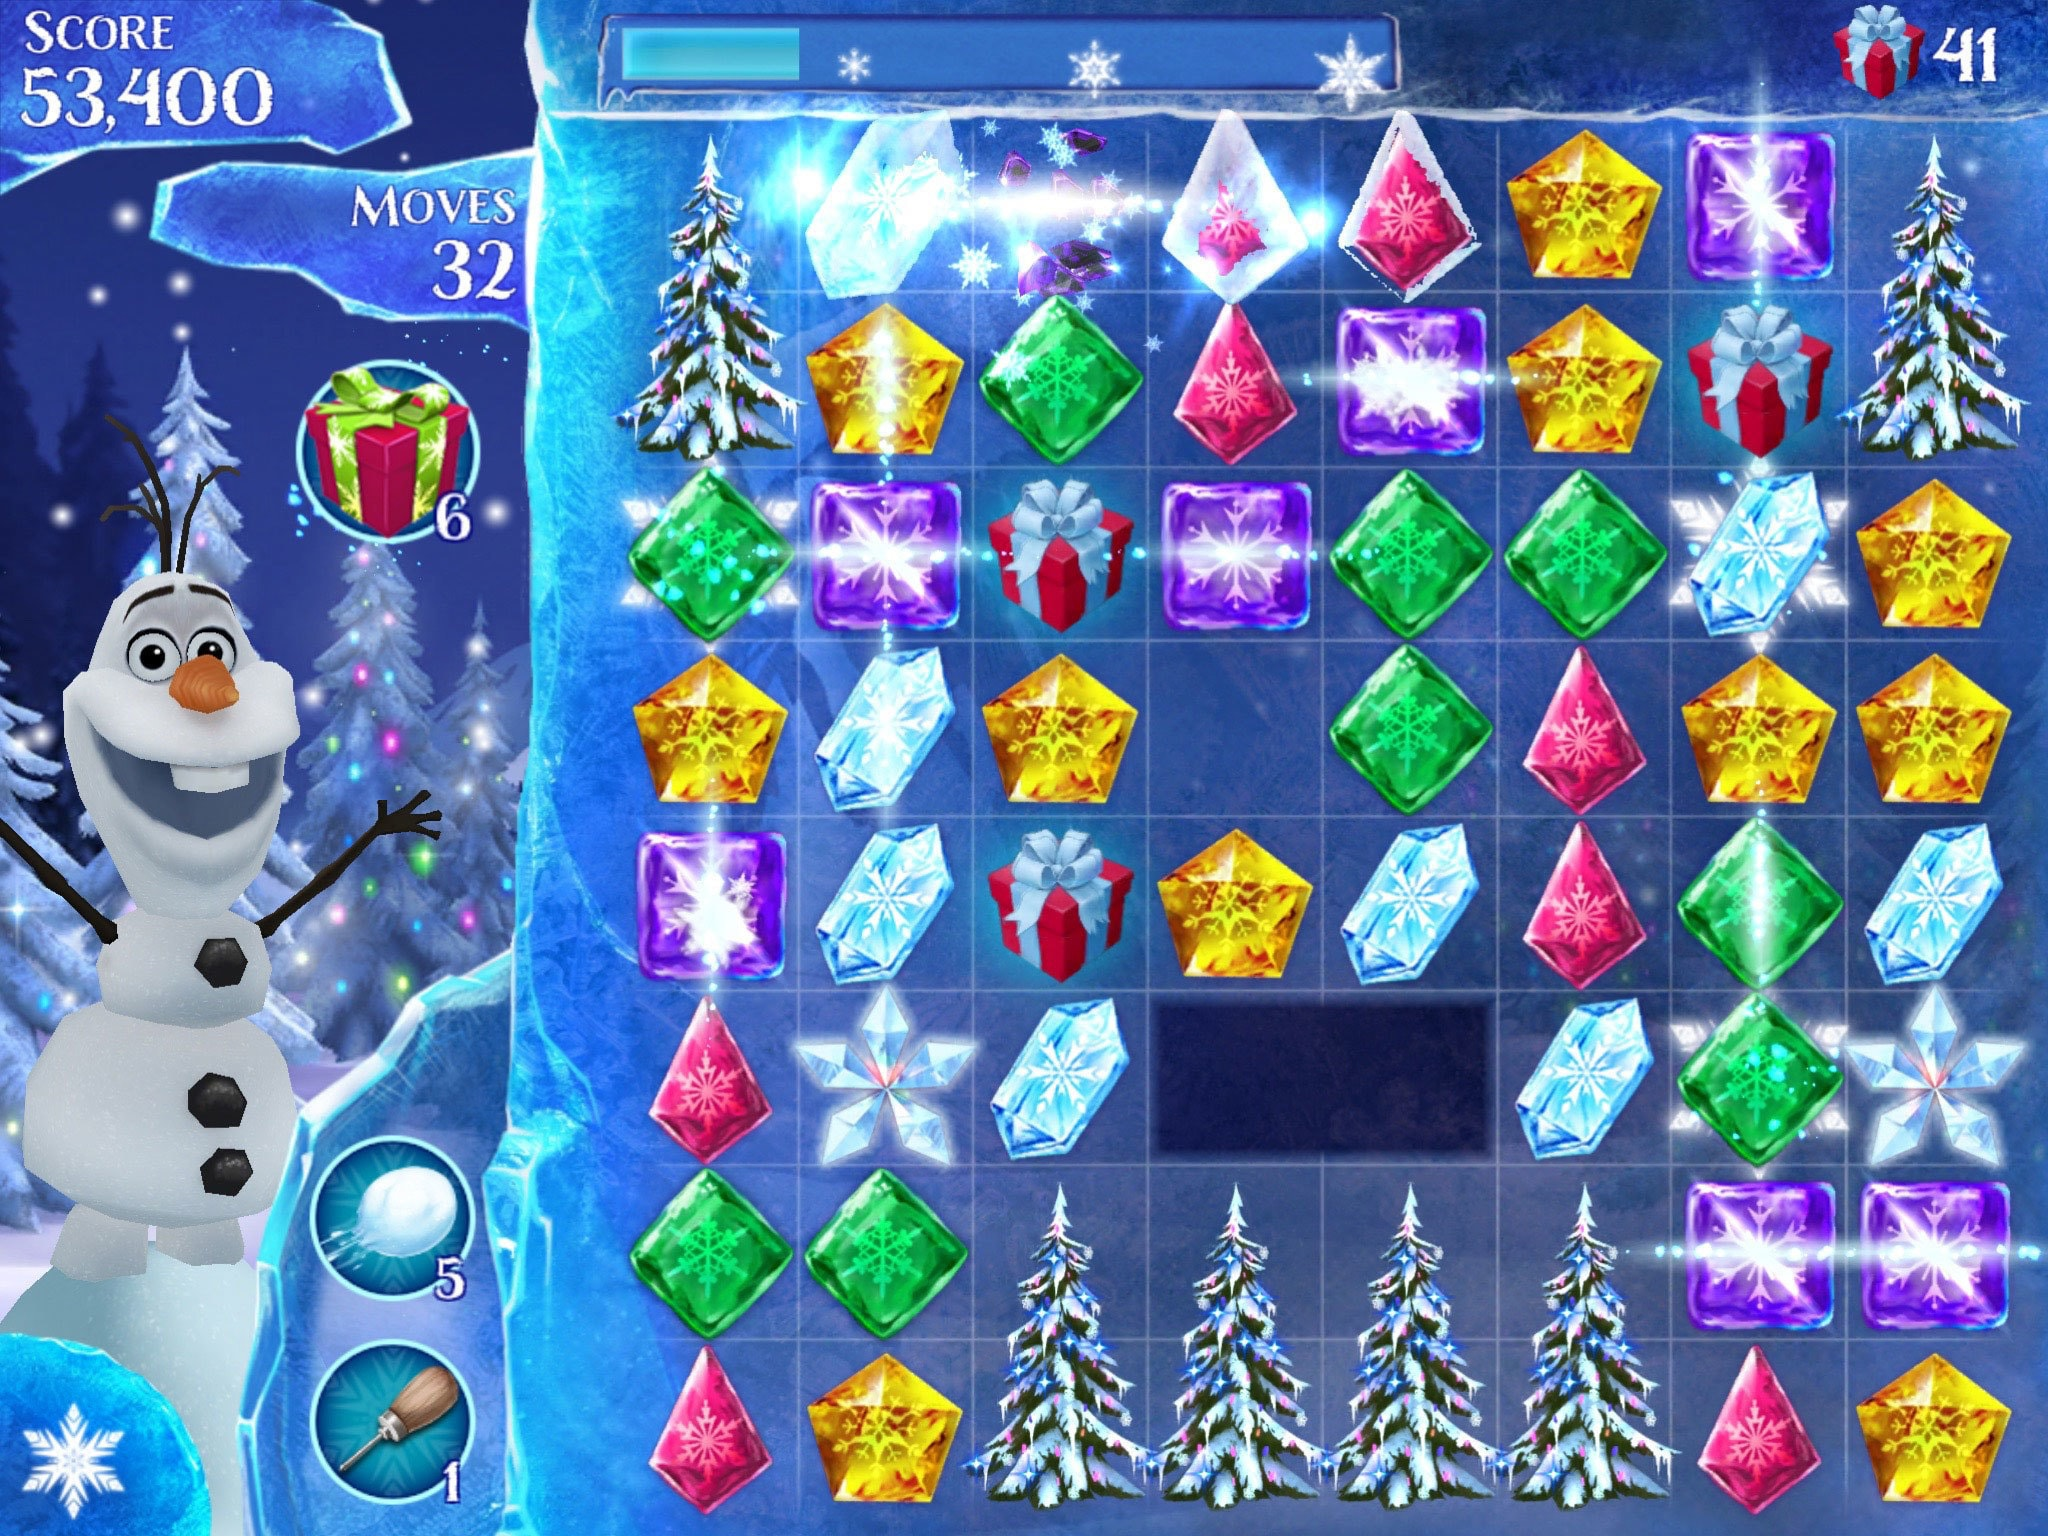 Frozen Free Fall - Screenshot Gallery